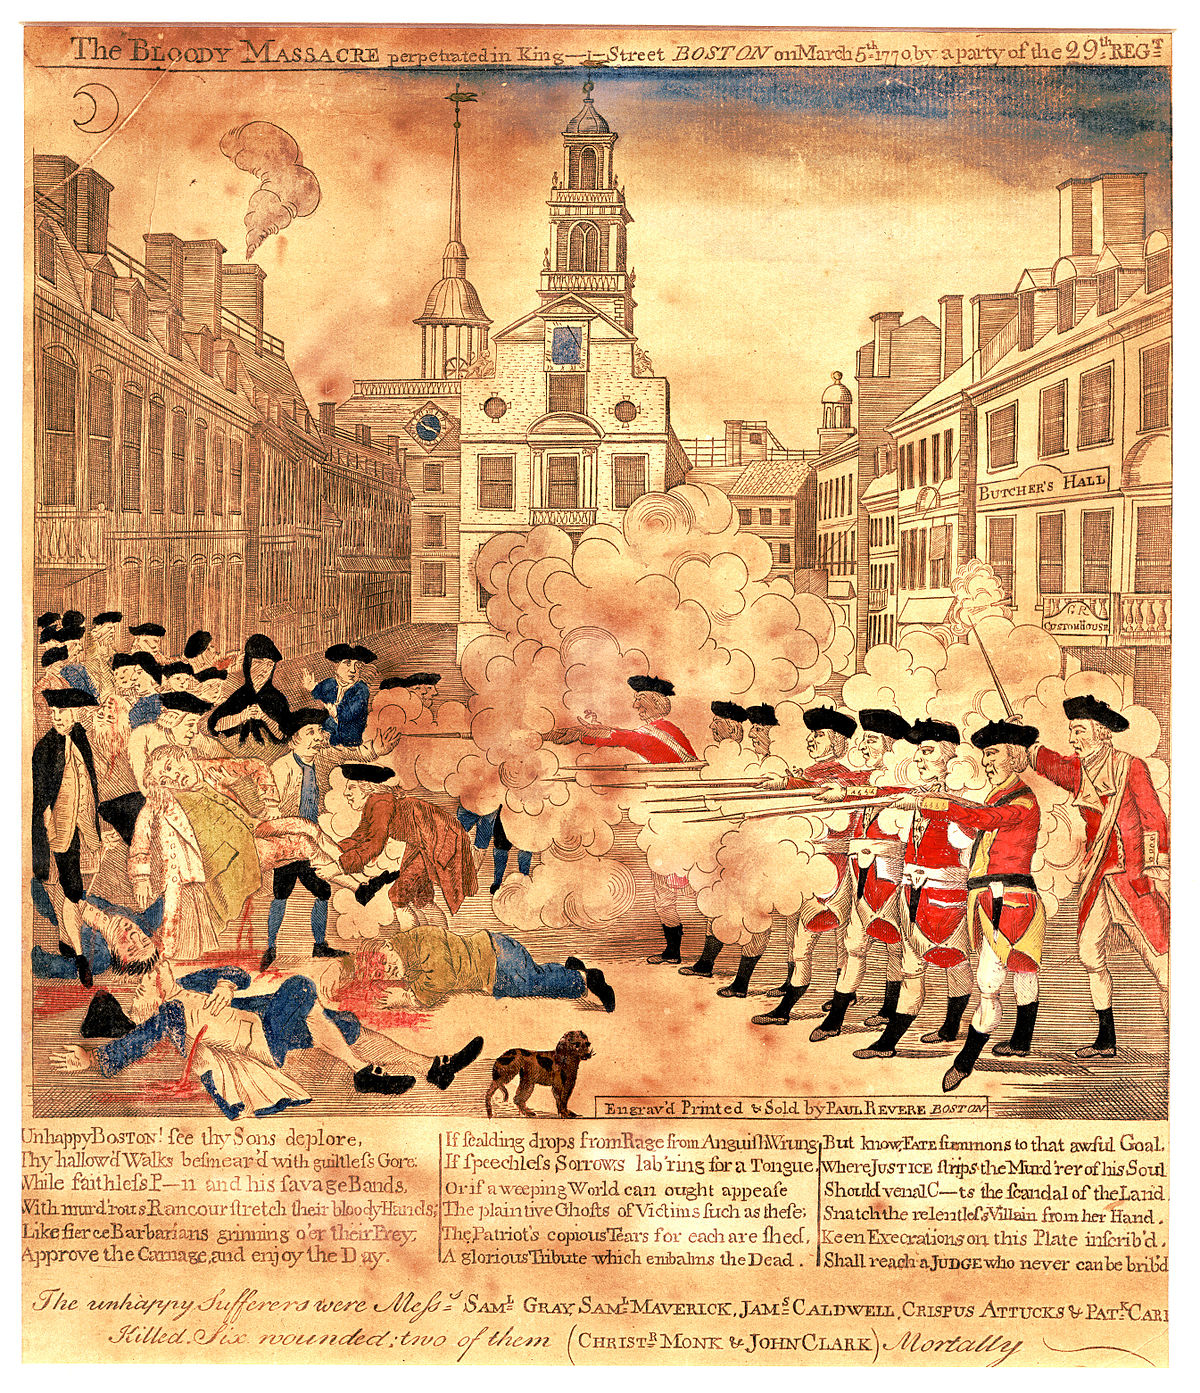 a description of the inconsistent roles in the colonial era New york colony began as the dutch trading outpost of new netherland in 1614  foodstuffs, especially grain, became the major exports for the remainder of the colonial period a landlord-tenant existence developed, taking the lead from the dutch patroons' land grants.